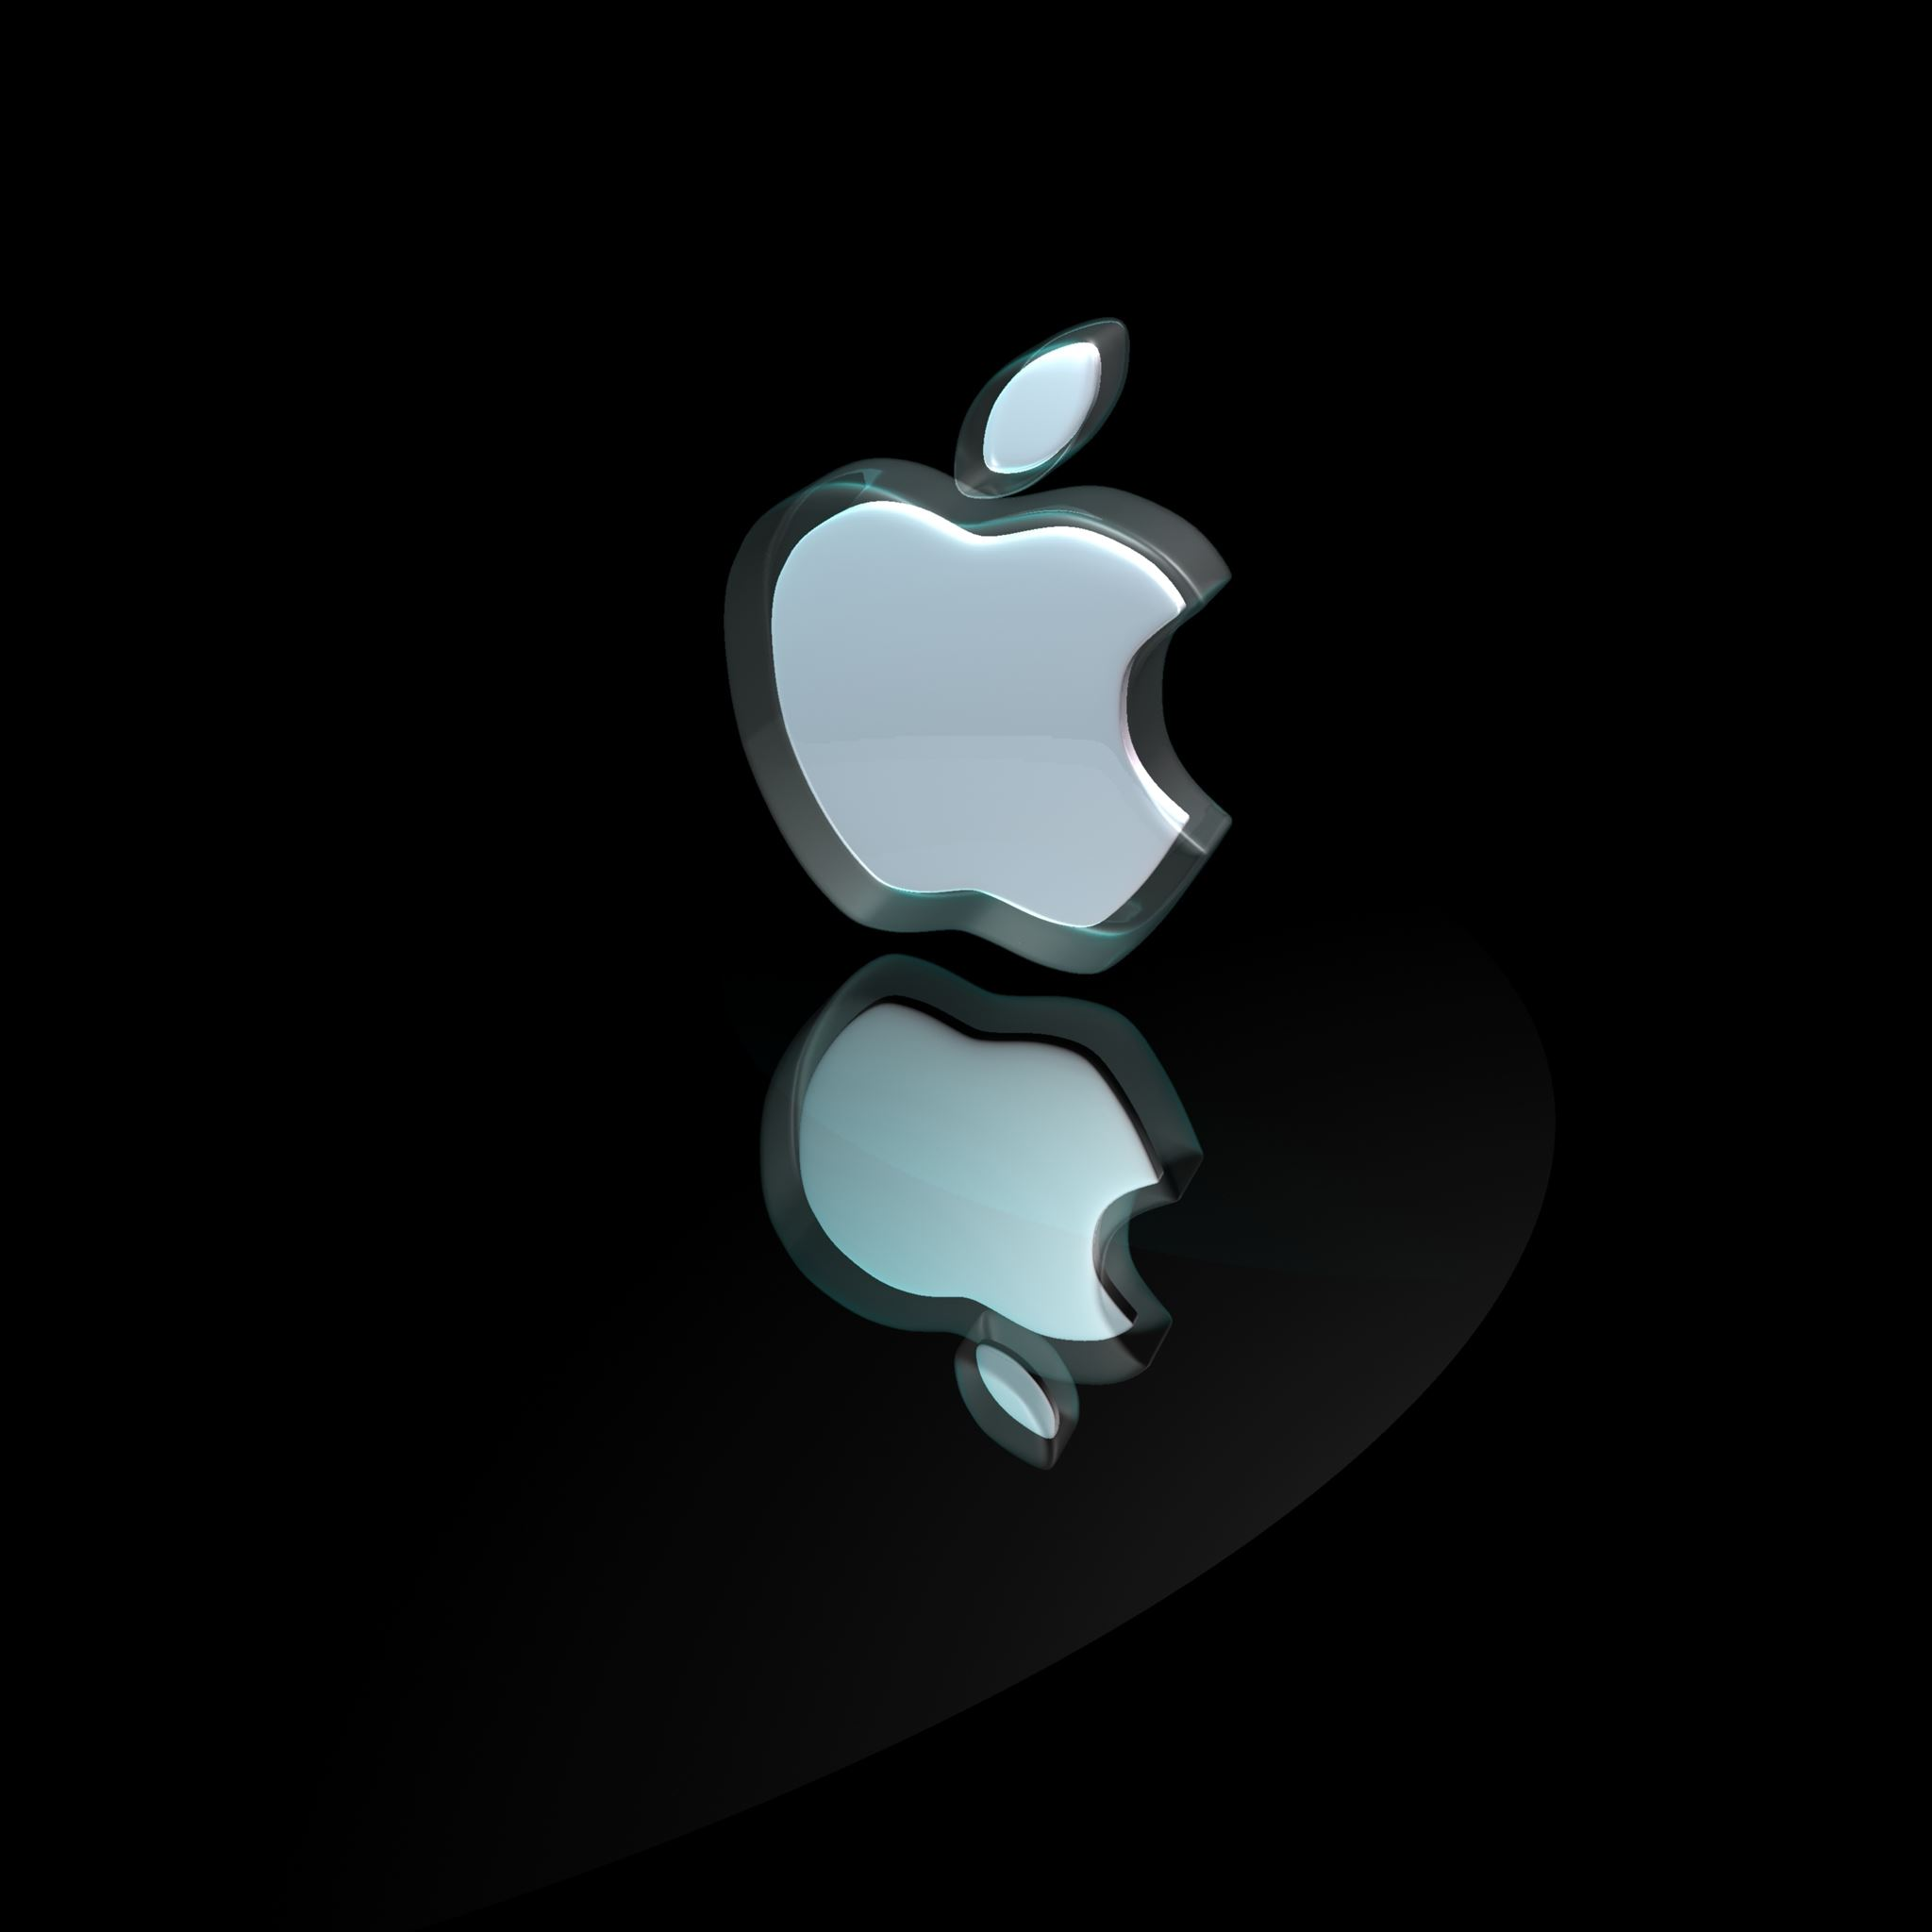 3d apple logo ipad